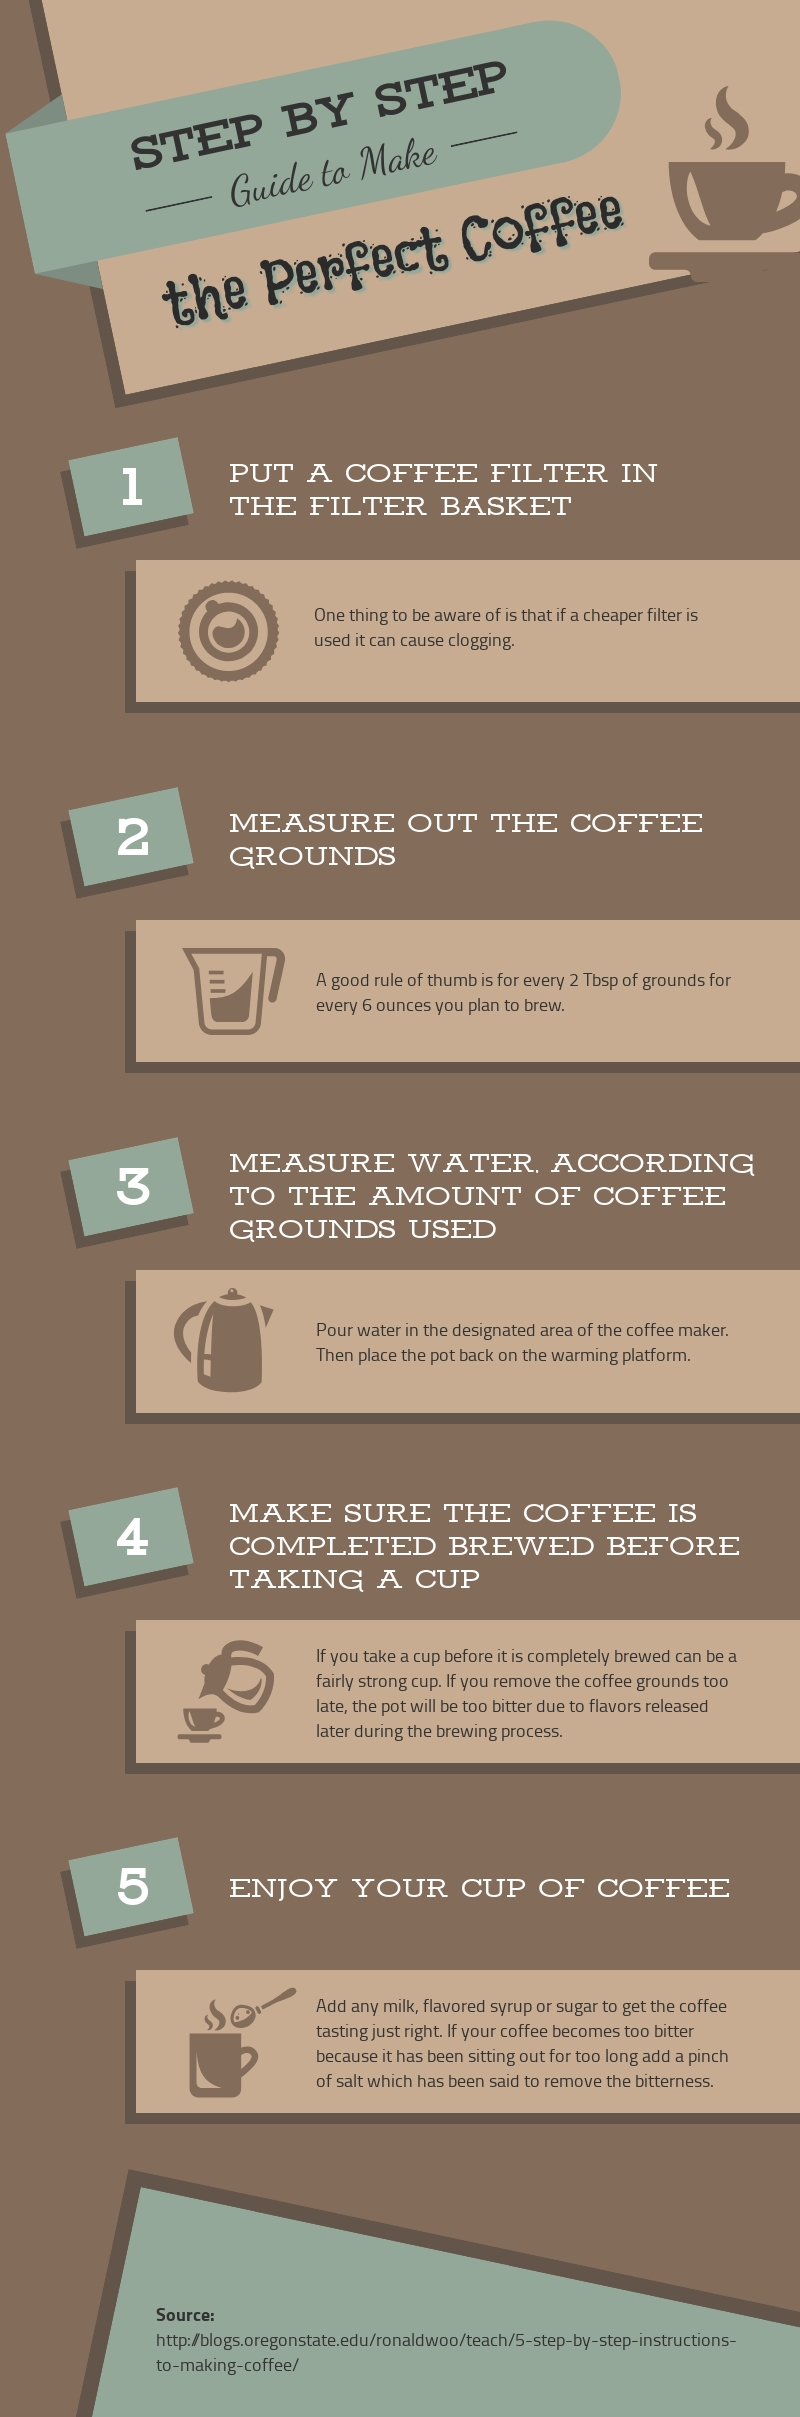 Guide to Make the Perfect Coffee - Infographic Template